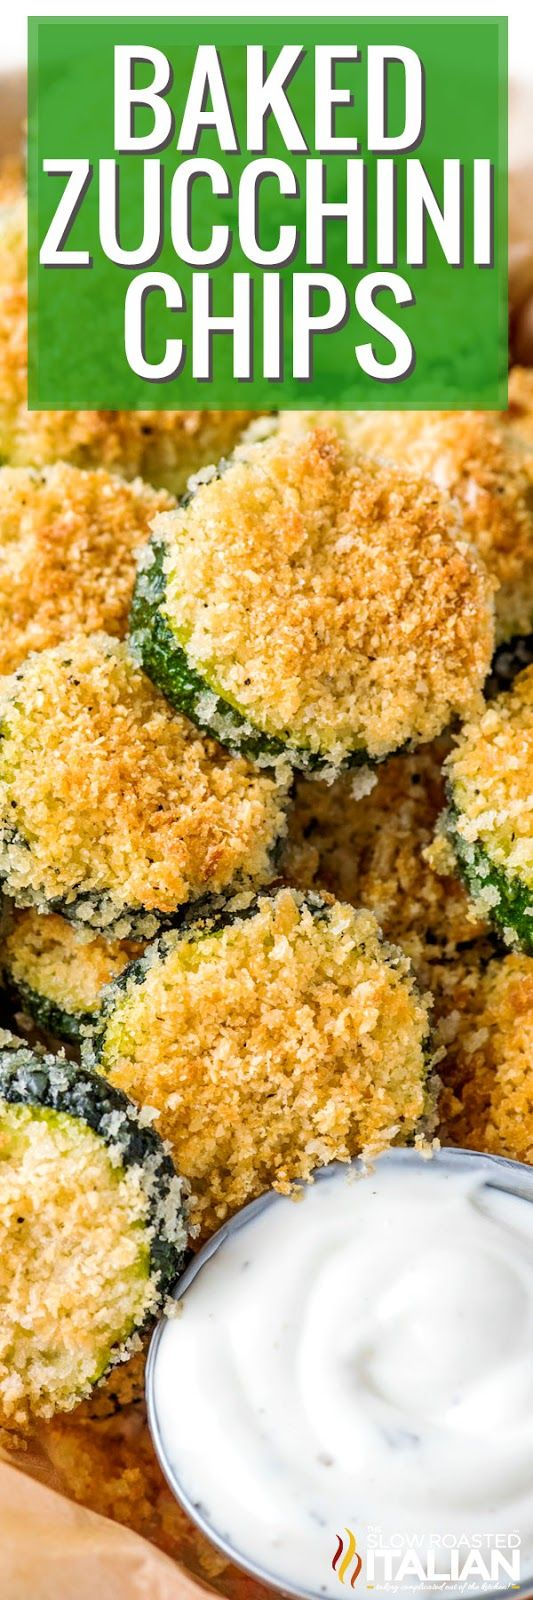 These tender Baked Zucchini Chips are coated in a simple Parmesan panko breading and are perfect for a fun appetizer or easy snack. Plus, it's easy to customize this recipe with a few herbs or your favorite dip!